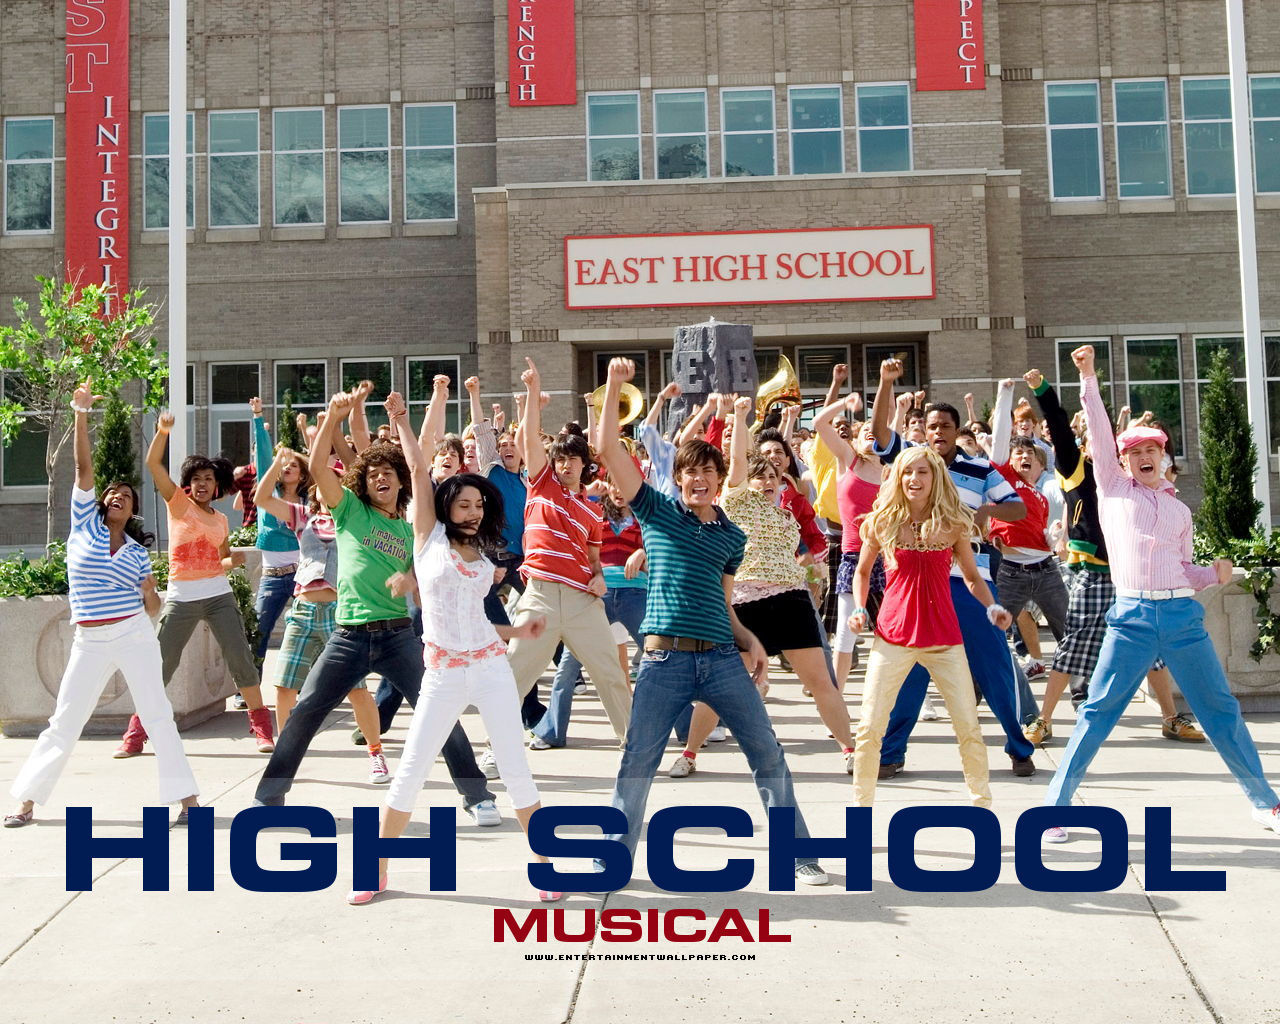 download HSM High School Musical Wallpaper 7091986 [1280x1024 1280x1024